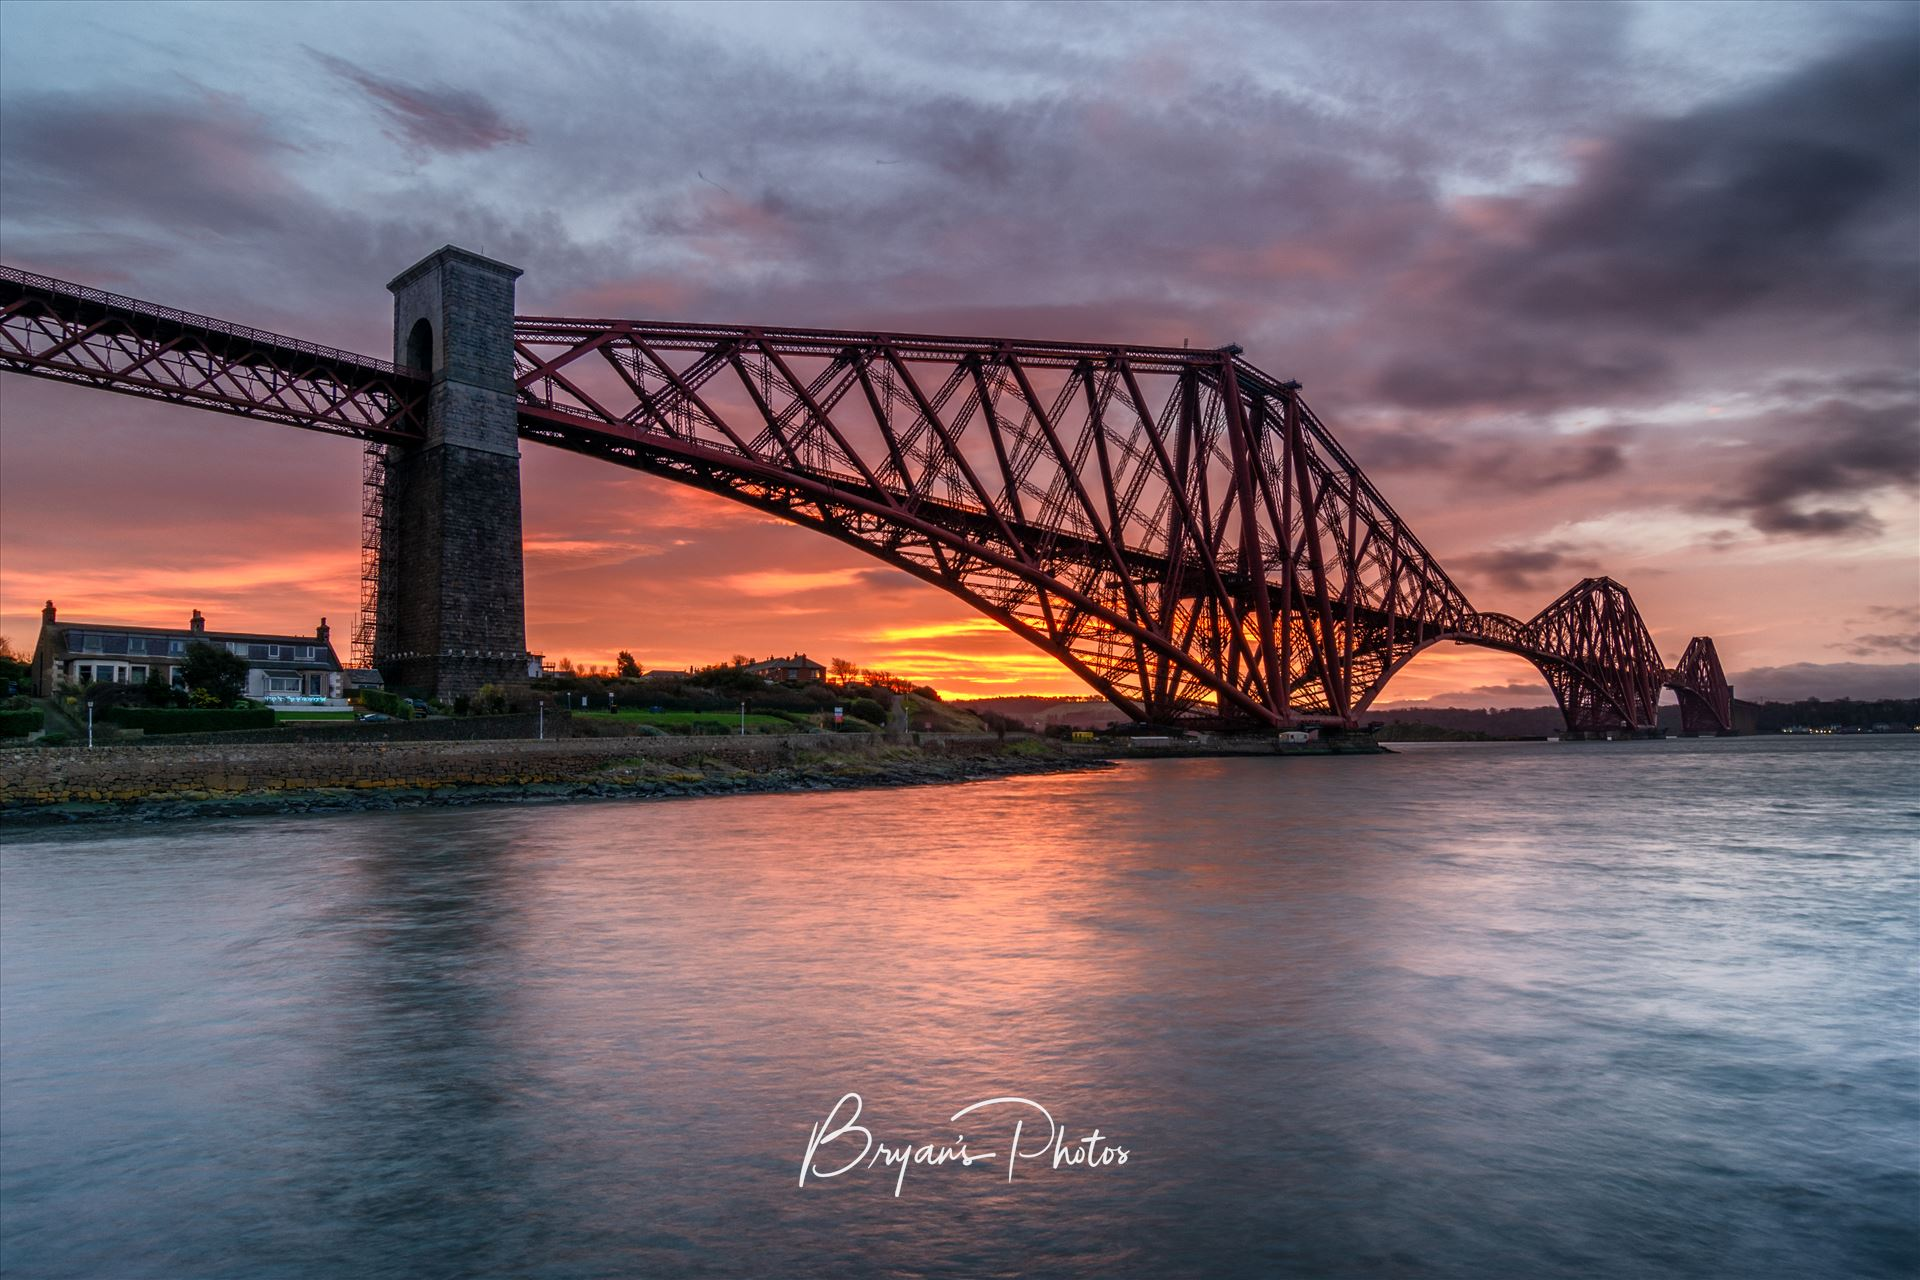 North Queensferry Sunrise A photograph of the Forth Rail Bridge taken at Sunrise from North Queensferry. by Bryans Photos